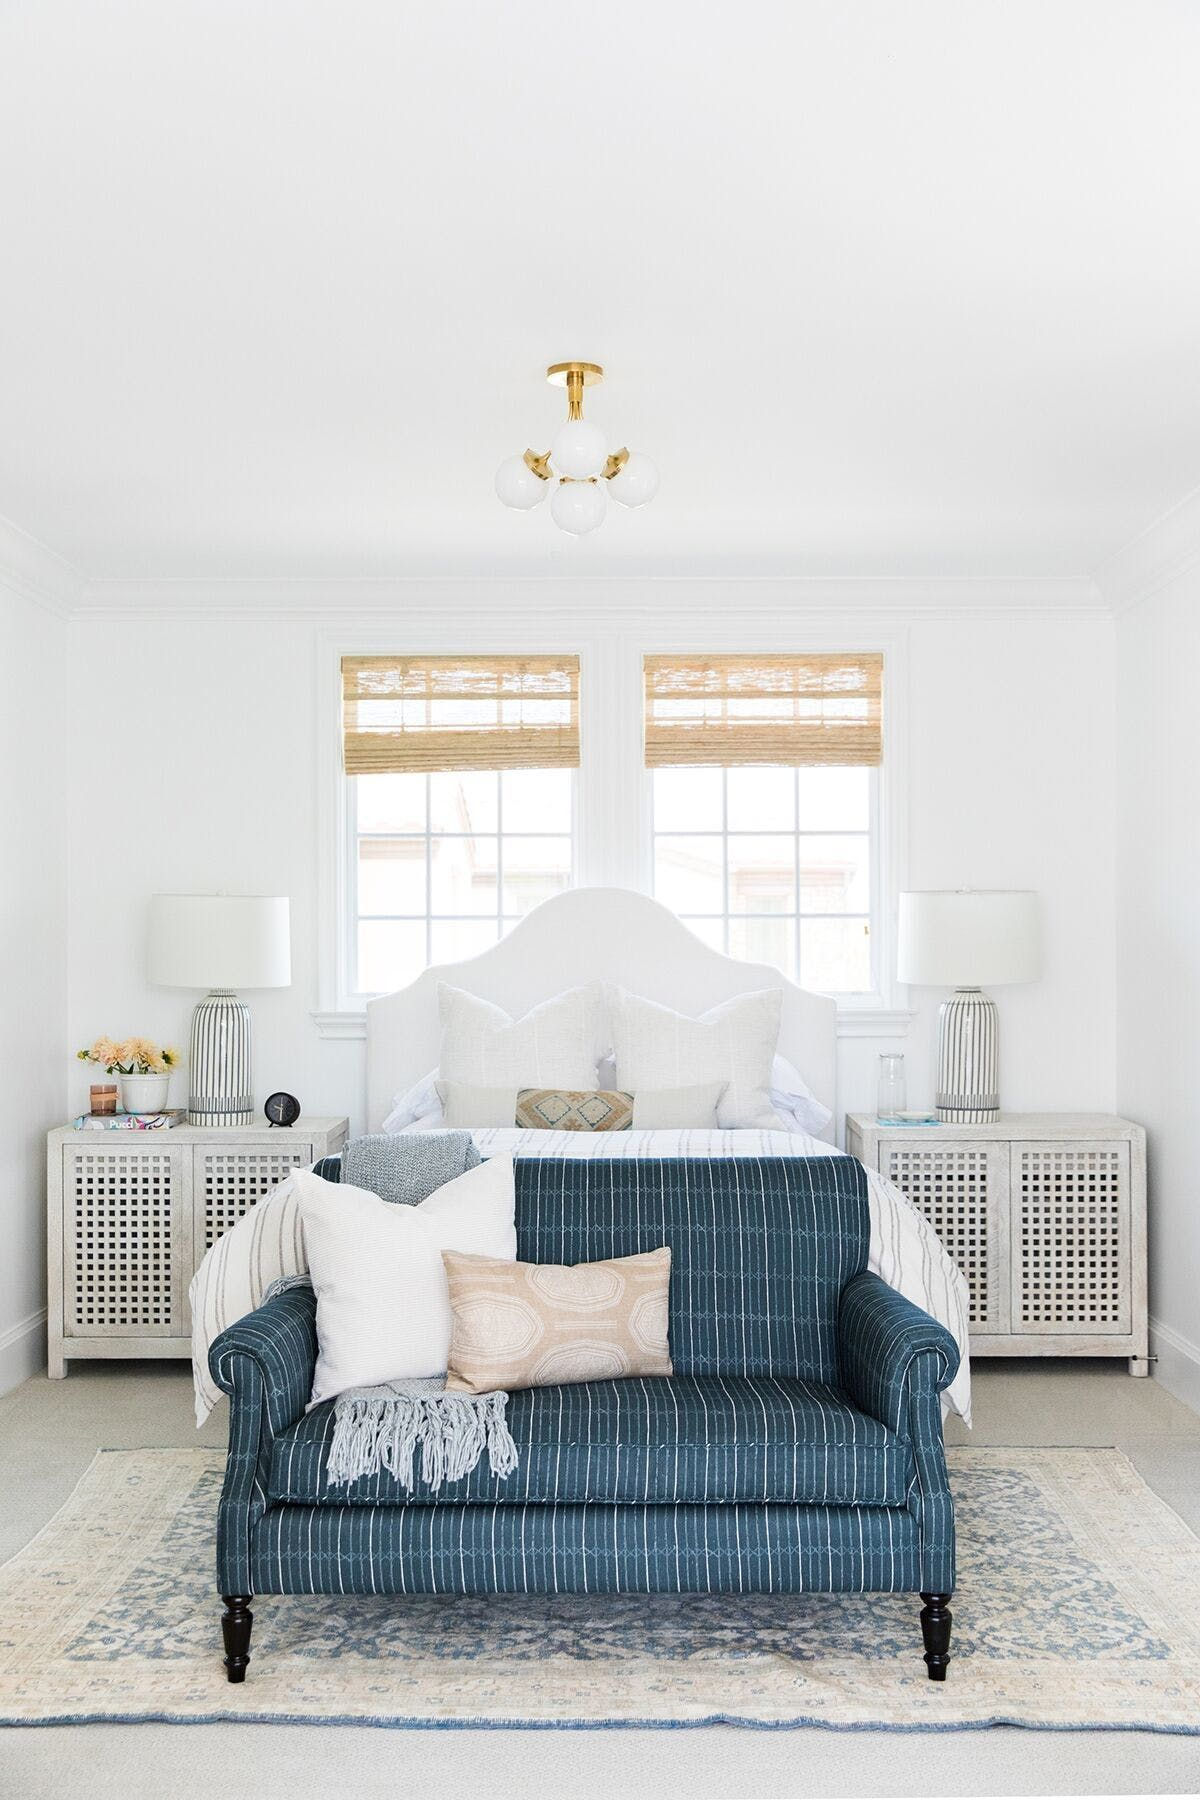 10 Hashtags To Follow If You Re Interior Design Obsessed Discount Bedroom Furniture Bedroom Furnishings Home Bedroom